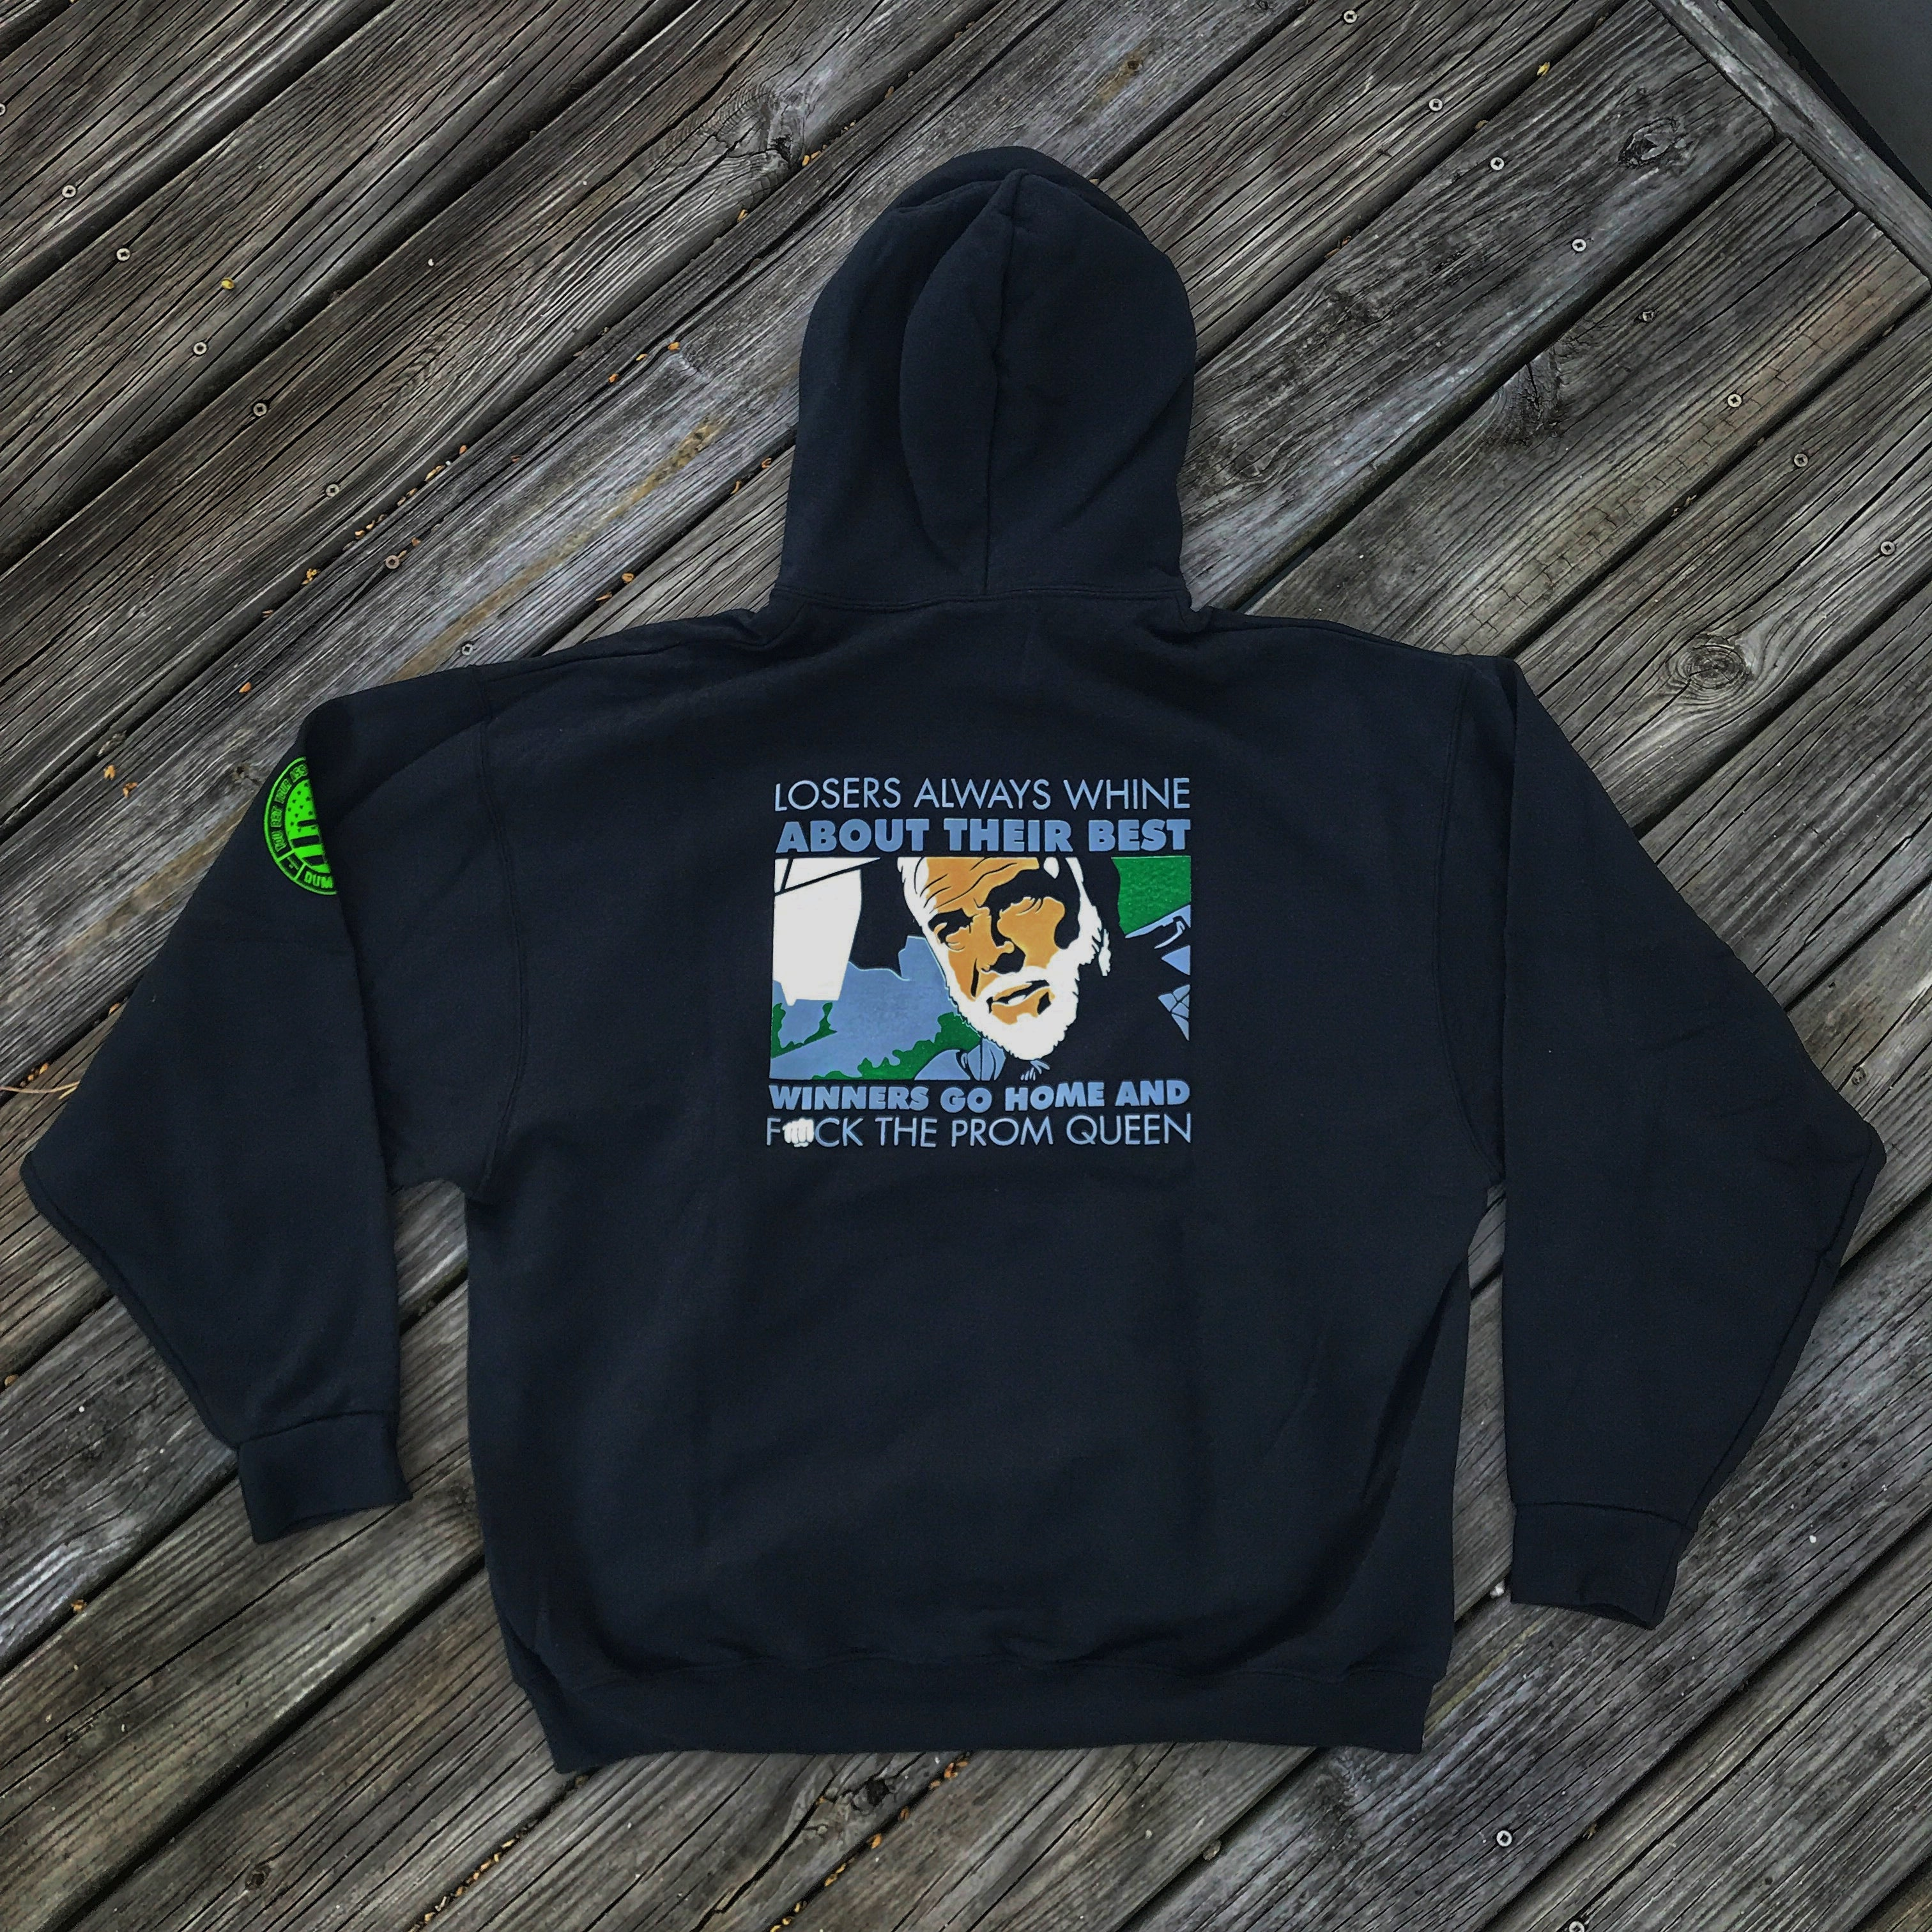 "THE ROCK ""LOSERS ALWAYS WHINE ABOUT THEIR BEST"" HOODIE"